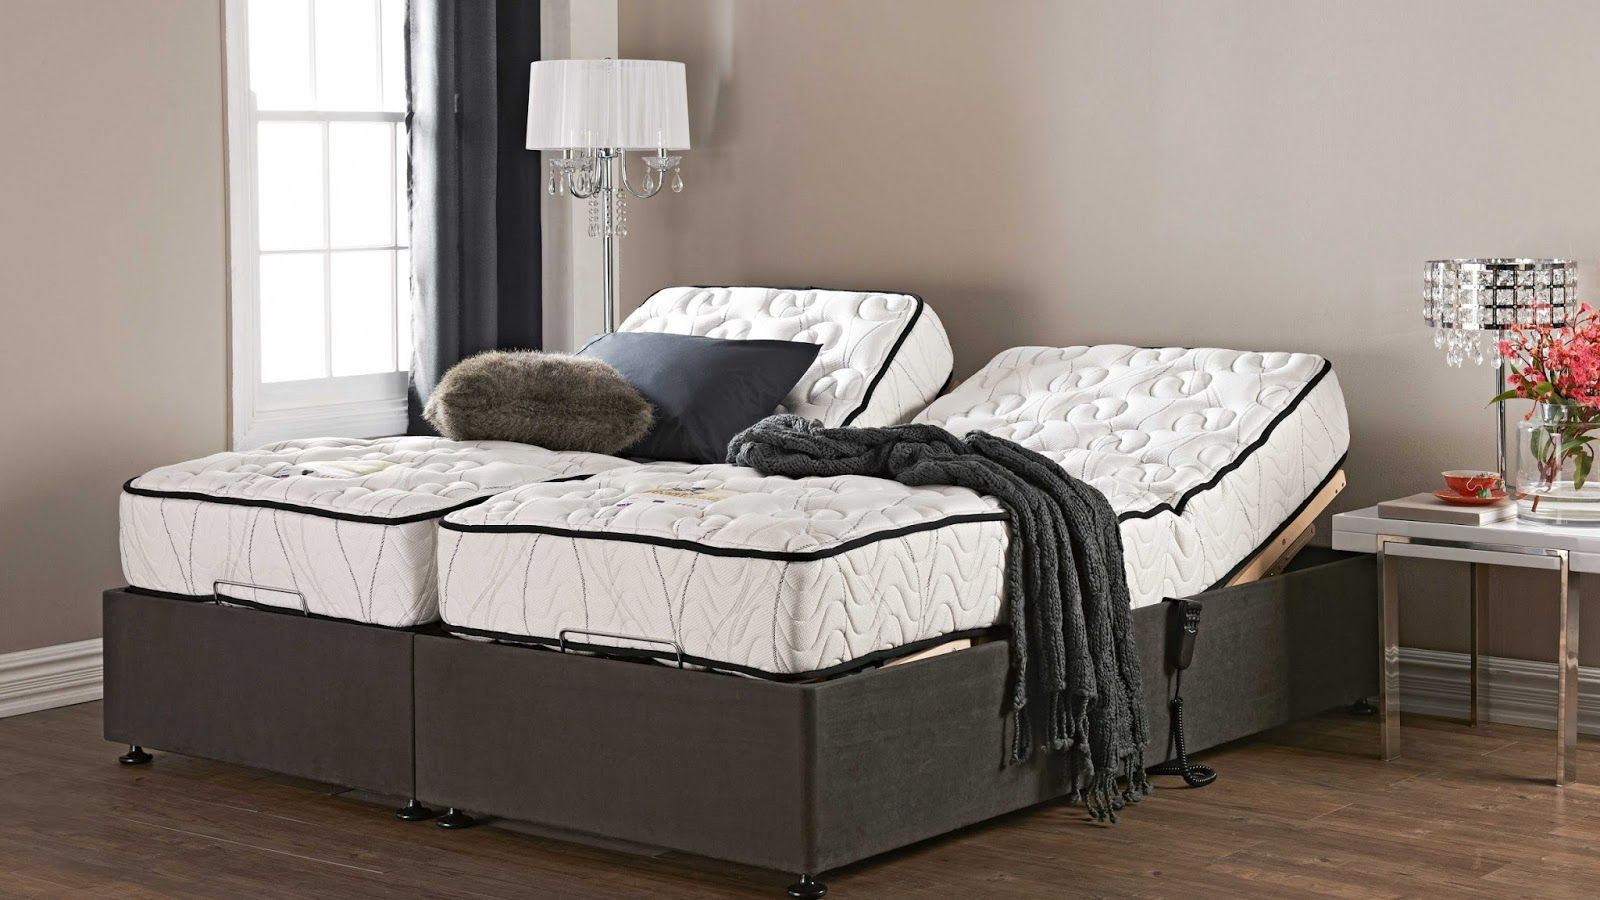 mattress split king adjustable bed frame with nightstand - Bed Frames For Adjustable Beds